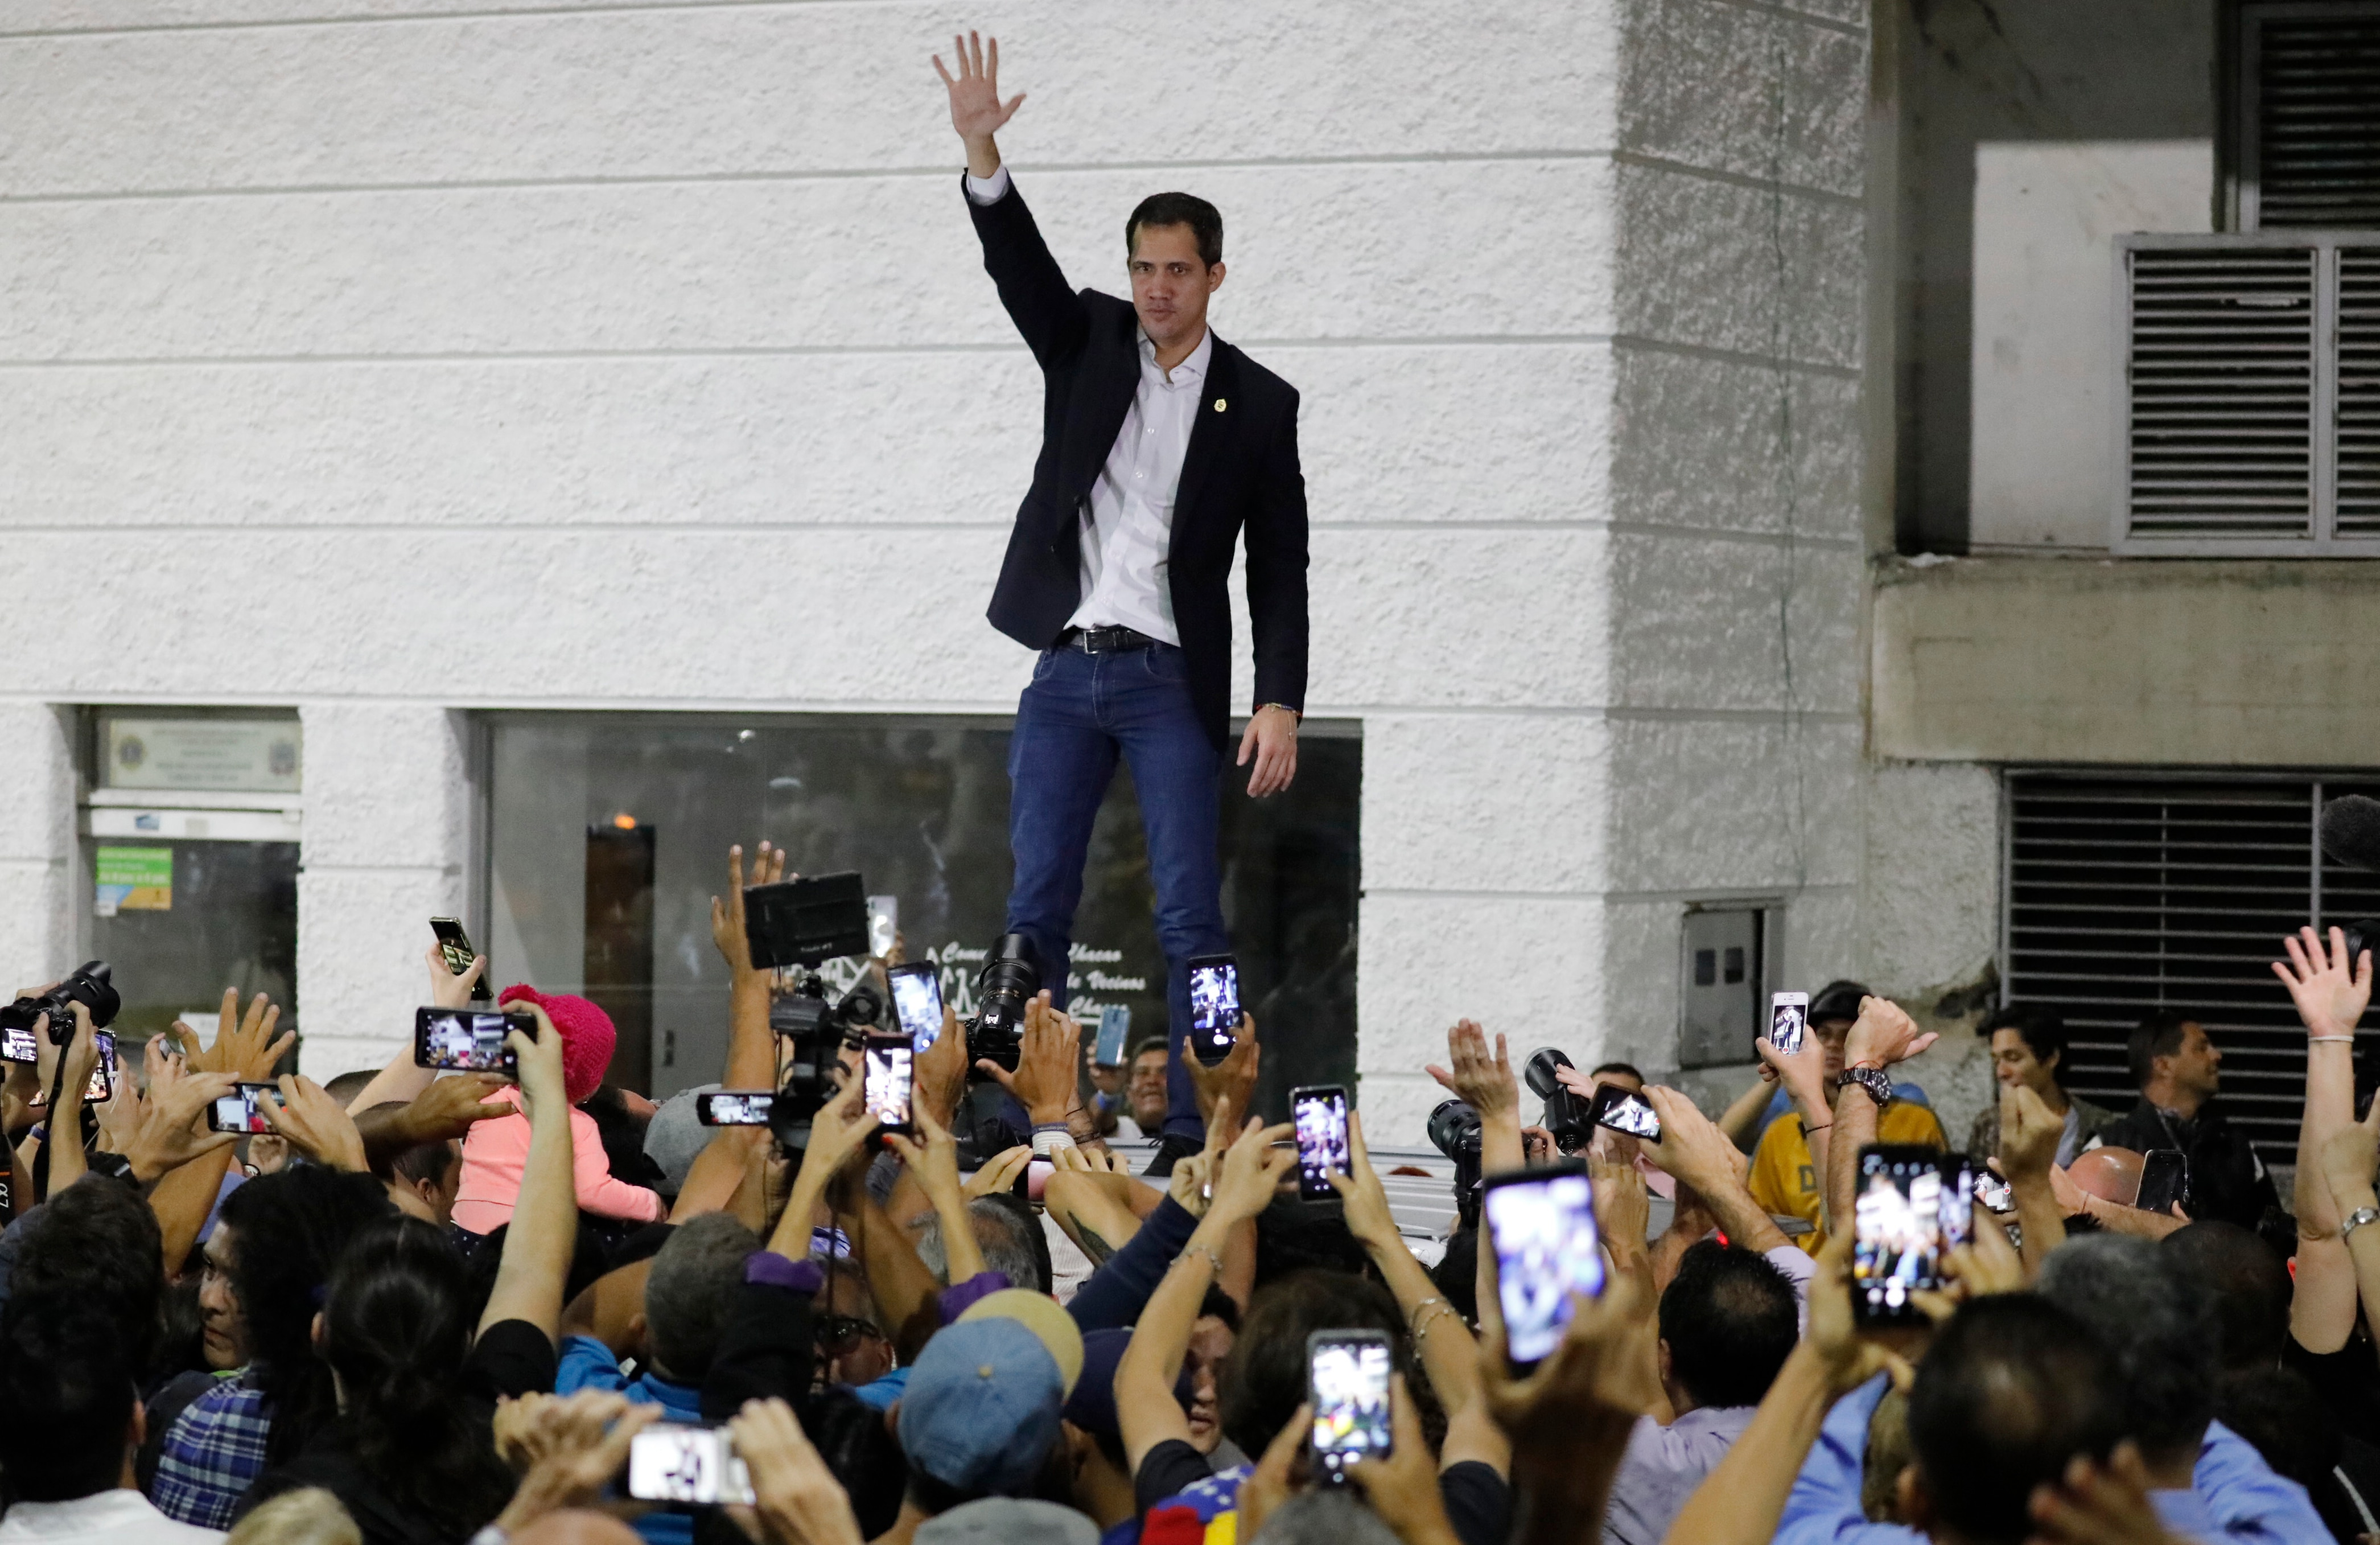 Venezuela Opposition Leaders Say December Parliamentary Election Rigged to Help Maduro